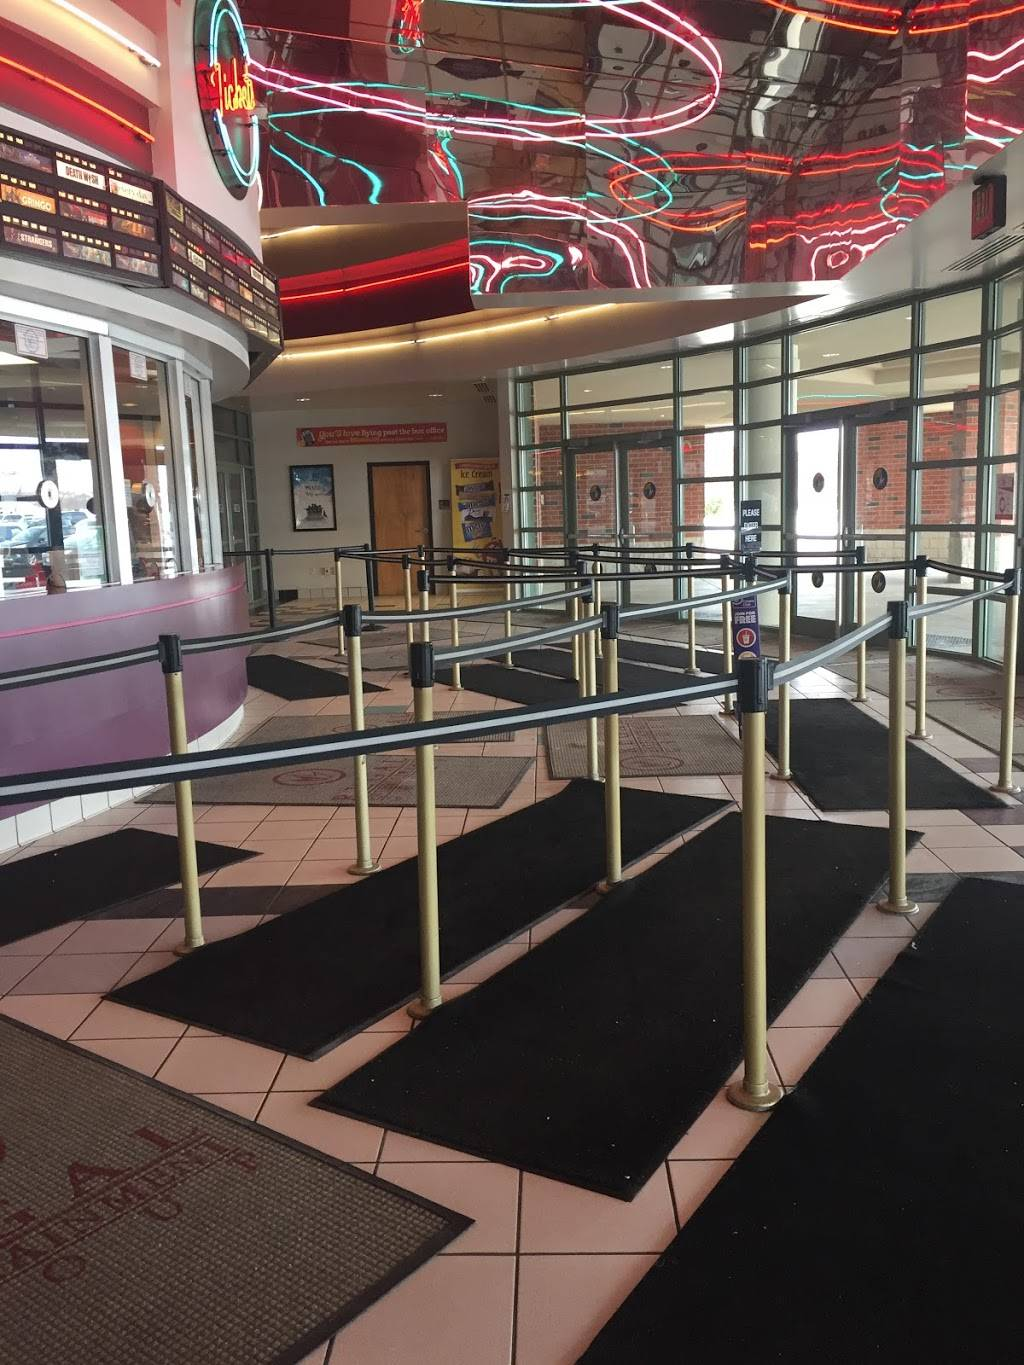 Regal Quaker Crossing 3450 Amelia Dr Orchard Park Ny 14127 Usa You can see how to get to regal cinemas ronkonkoma 9 on our website. 3450 amelia dr orchard park ny 14127 usa